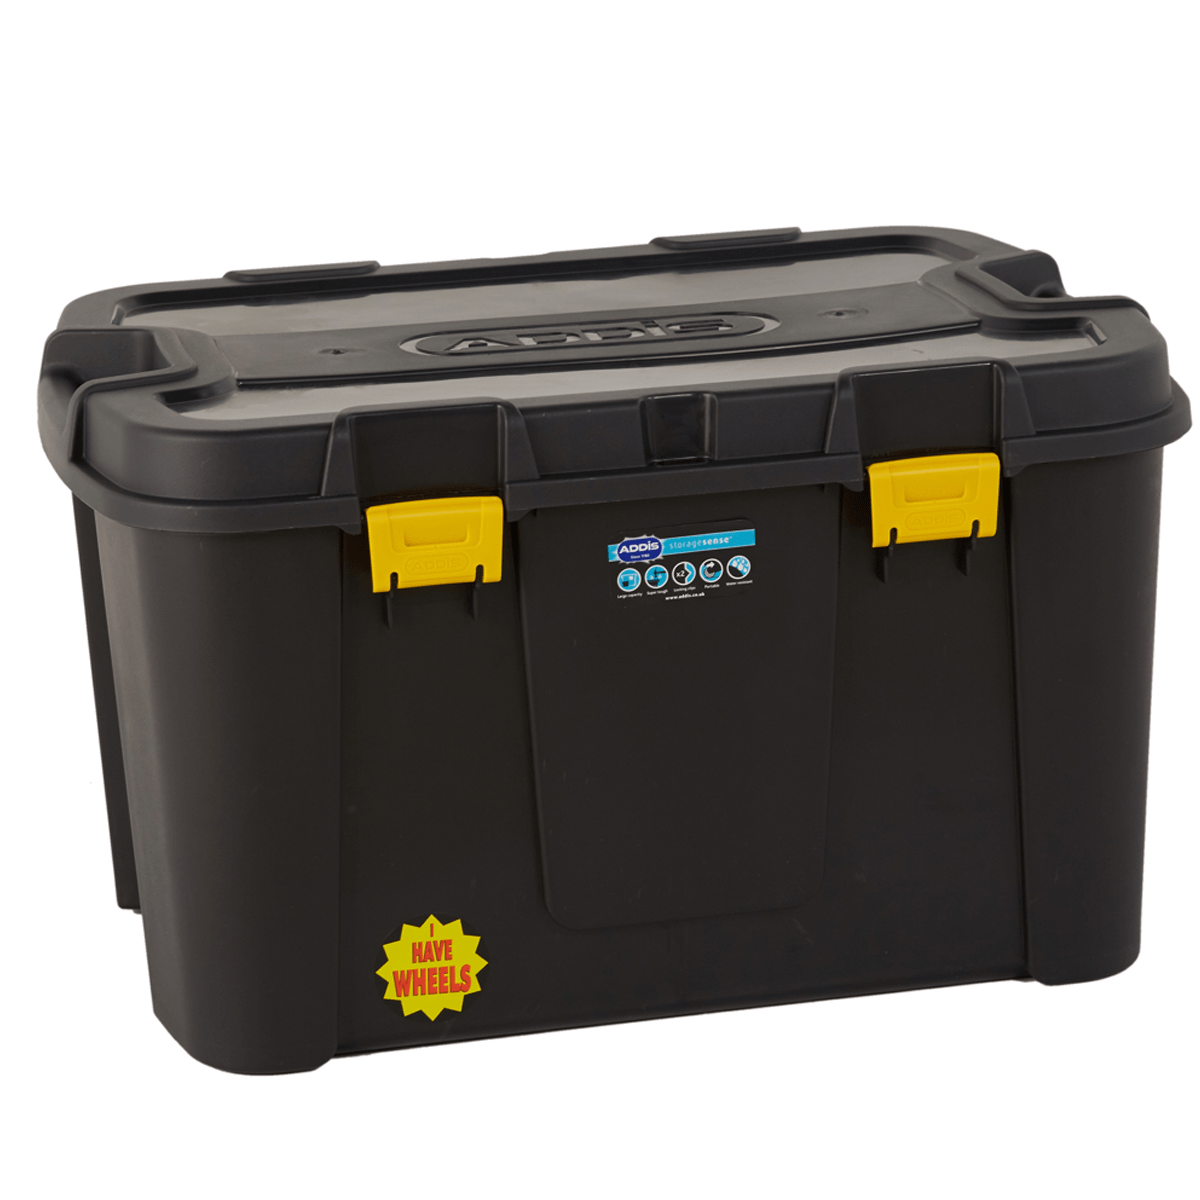 Addis Heavy Duty Mobile Storage Box